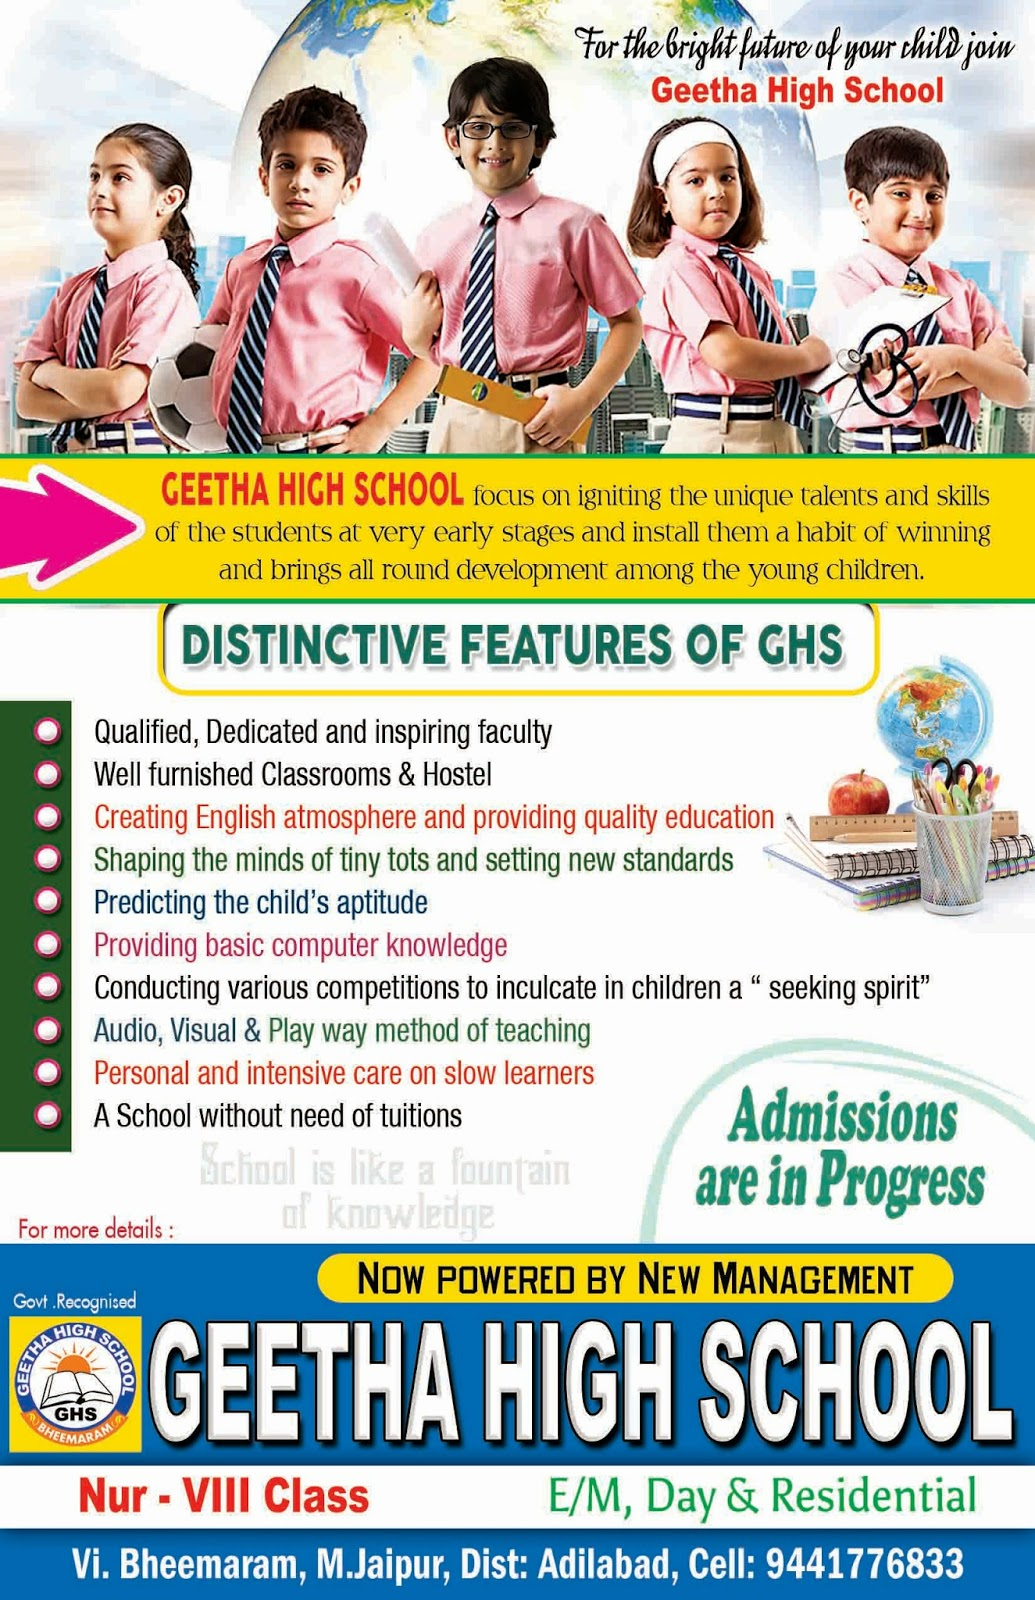 geetha high school brochure design | naveengfx